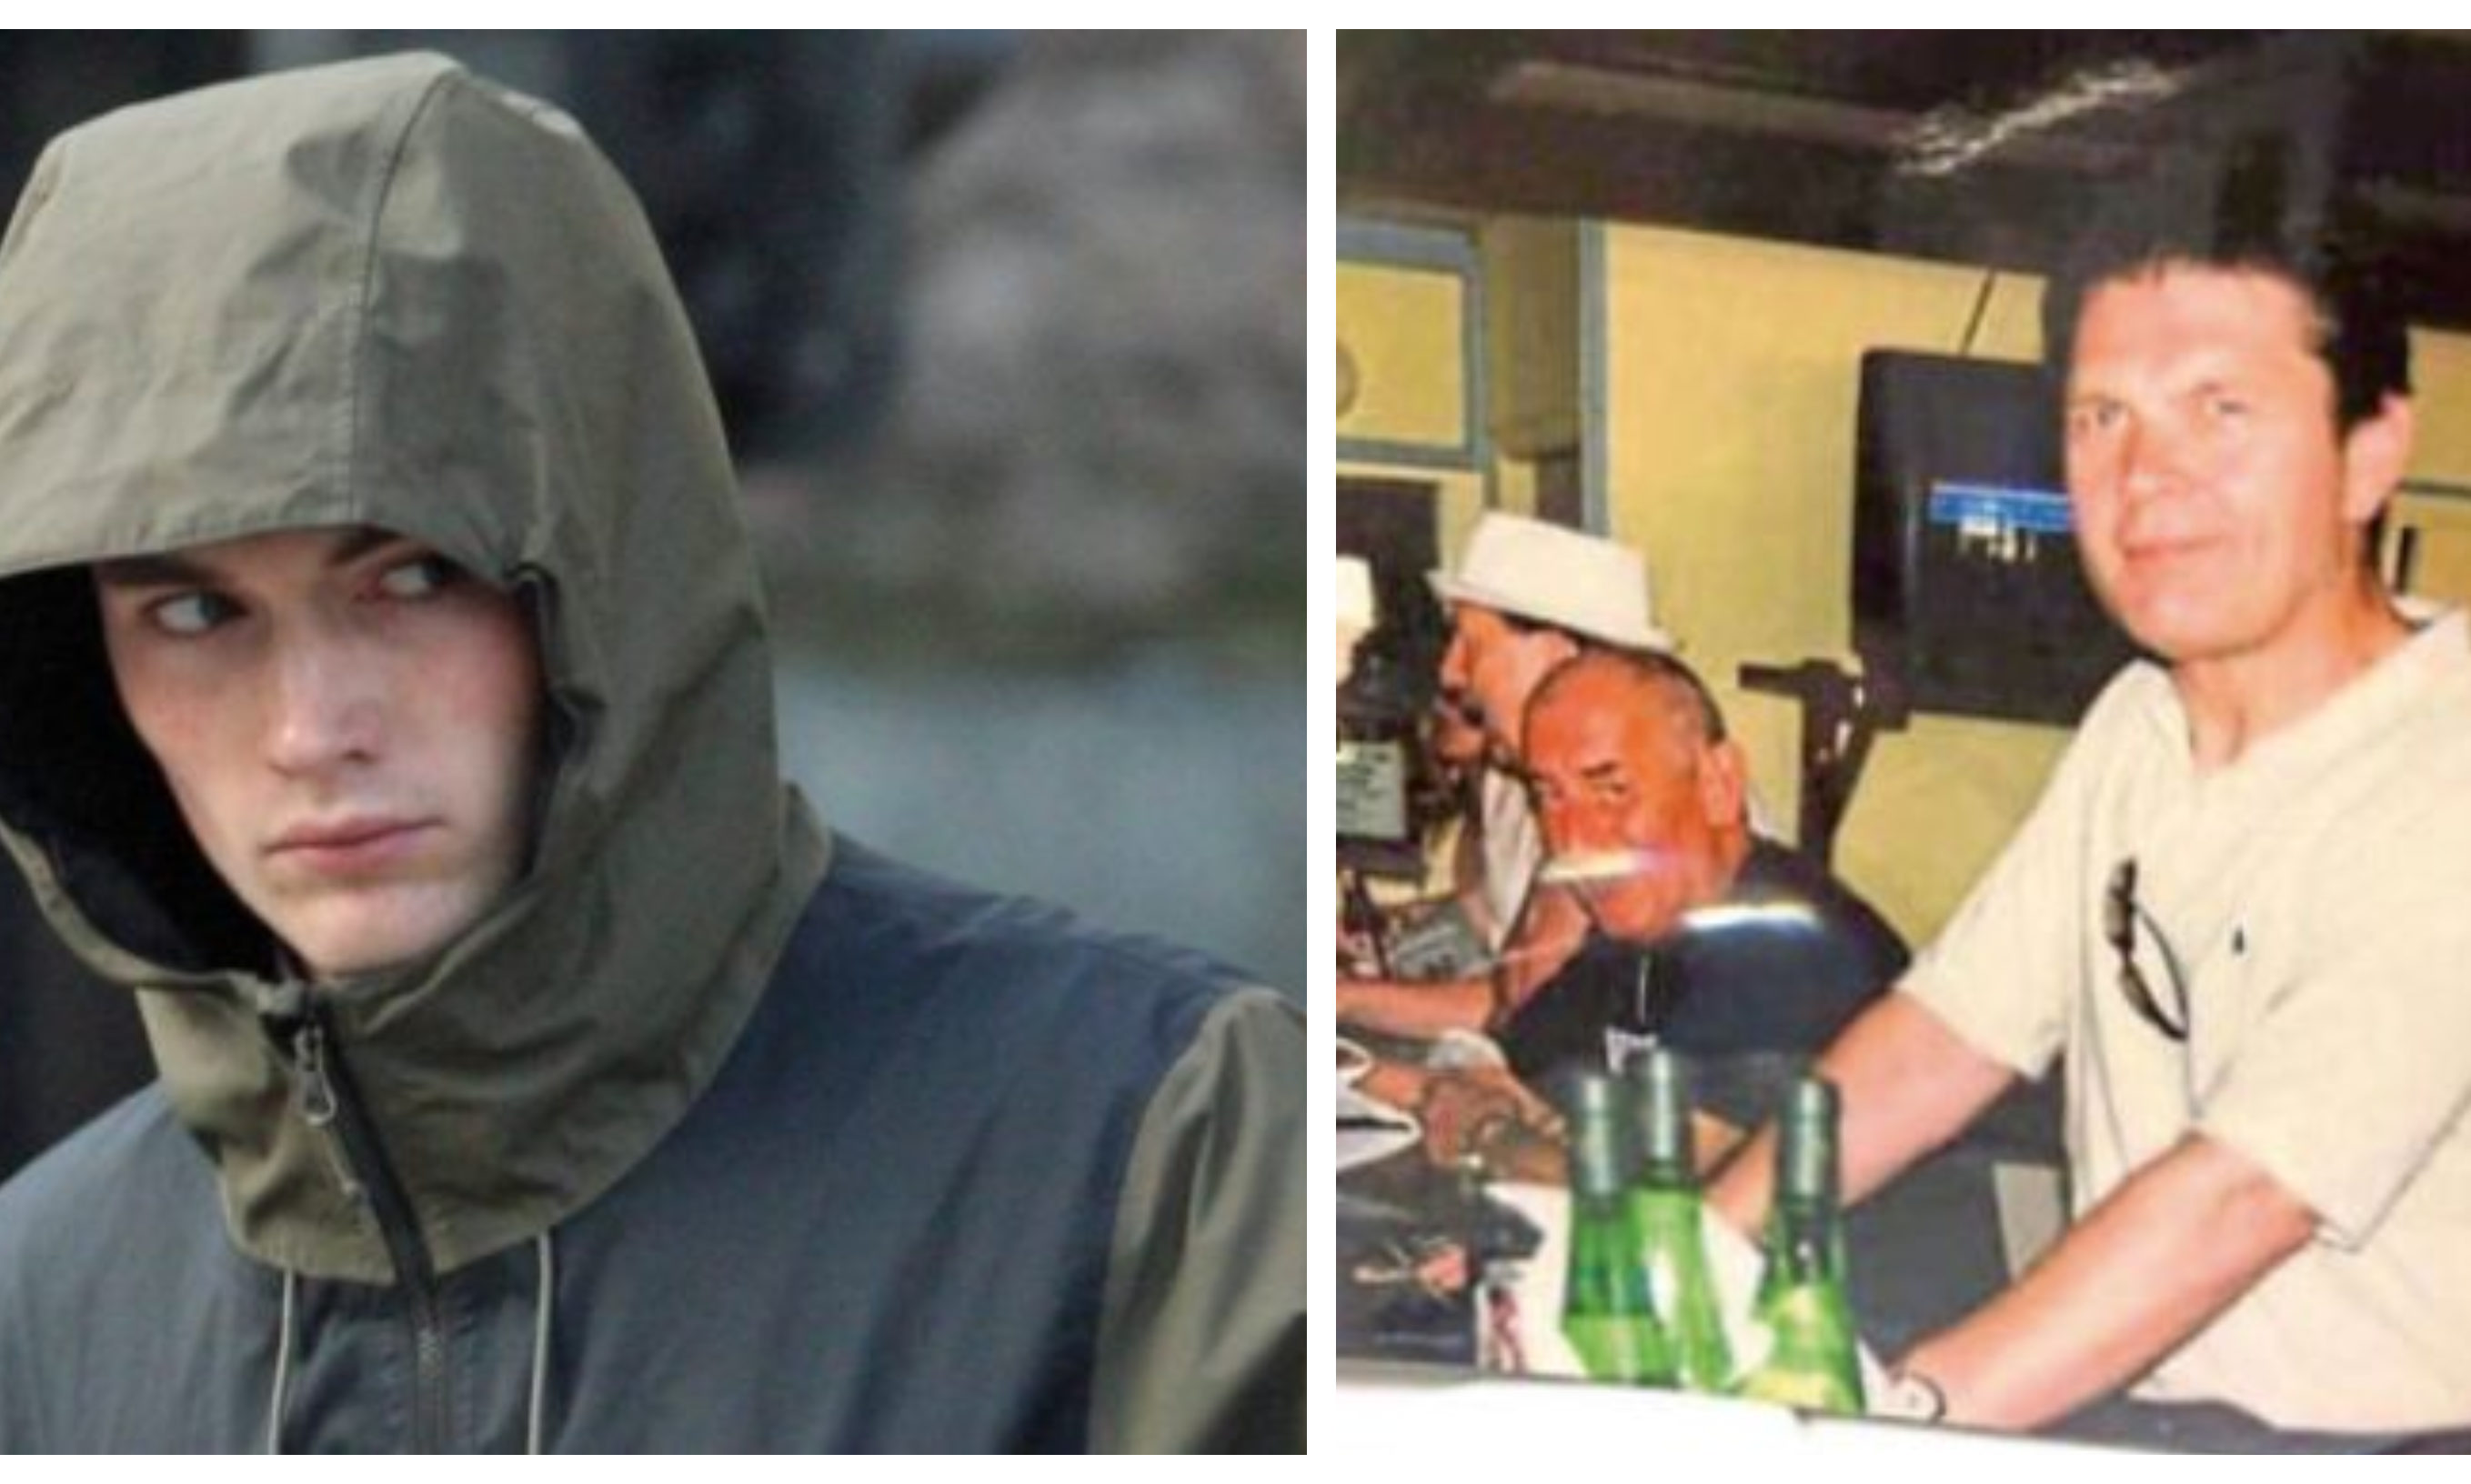 Wes Reid, left, is accused of killing Brian Fox, right. He has lodged a special defence of self-defence.